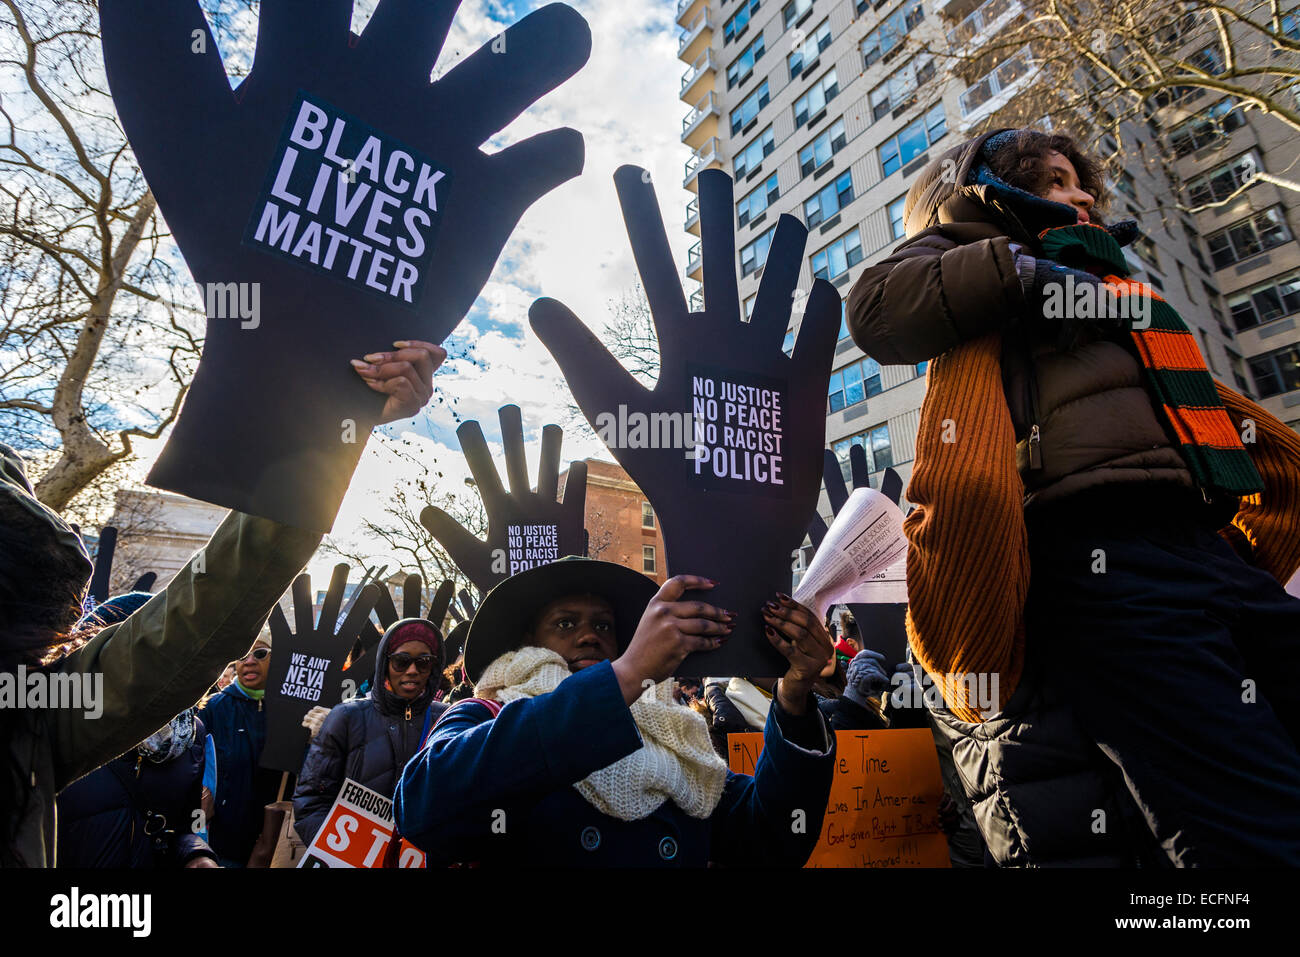 New York, USA. 13th December, 2014. Ten days after a Staten Island Grand Jury failed to indict Police Officer Daniel - Stock Image